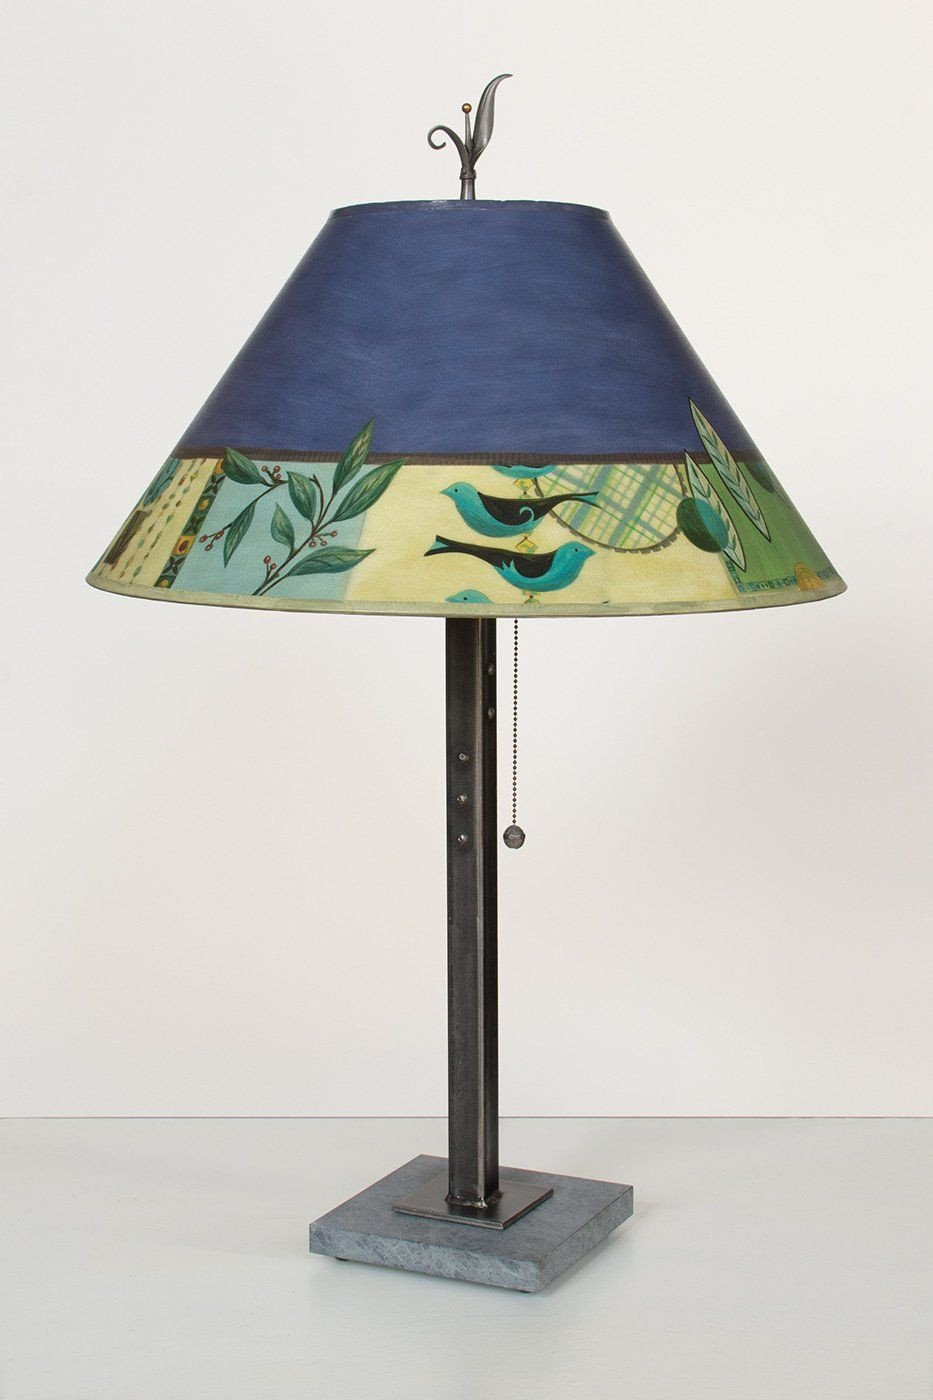 Steel Table Lamp on Italian Marble with Large Conical Shade in New Capri Periwinkle